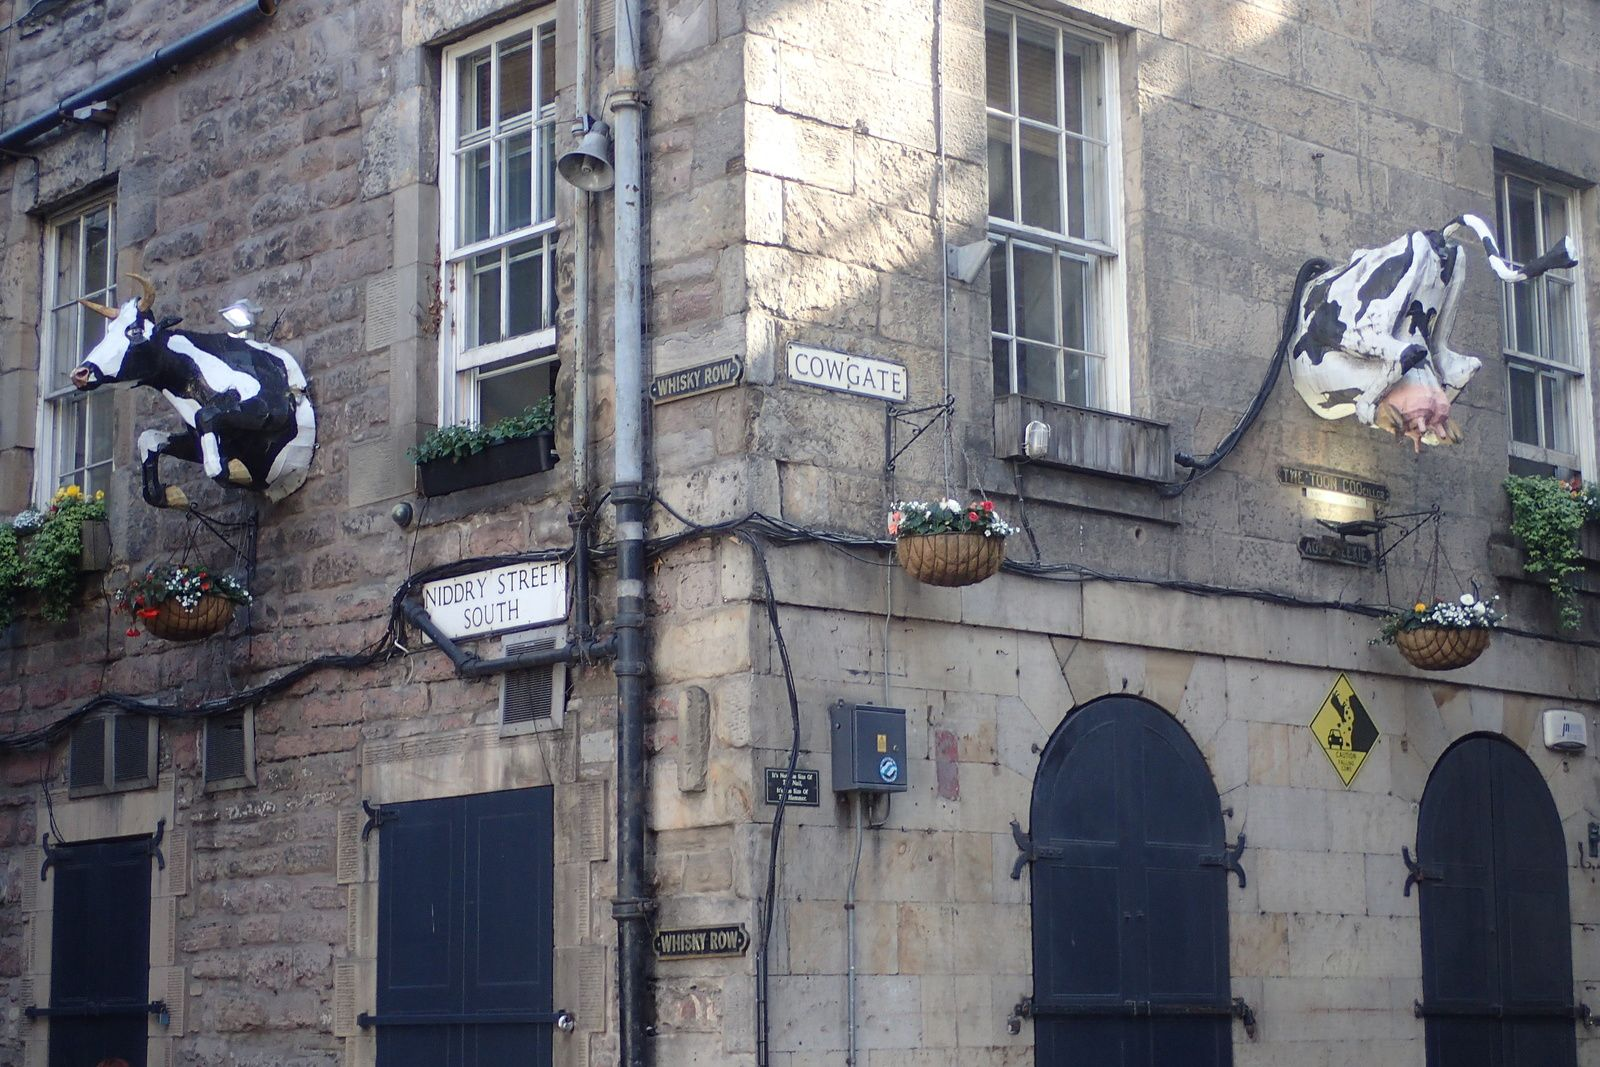 COWGATE Whisky_Row Niddry street south edinburgh Insolite